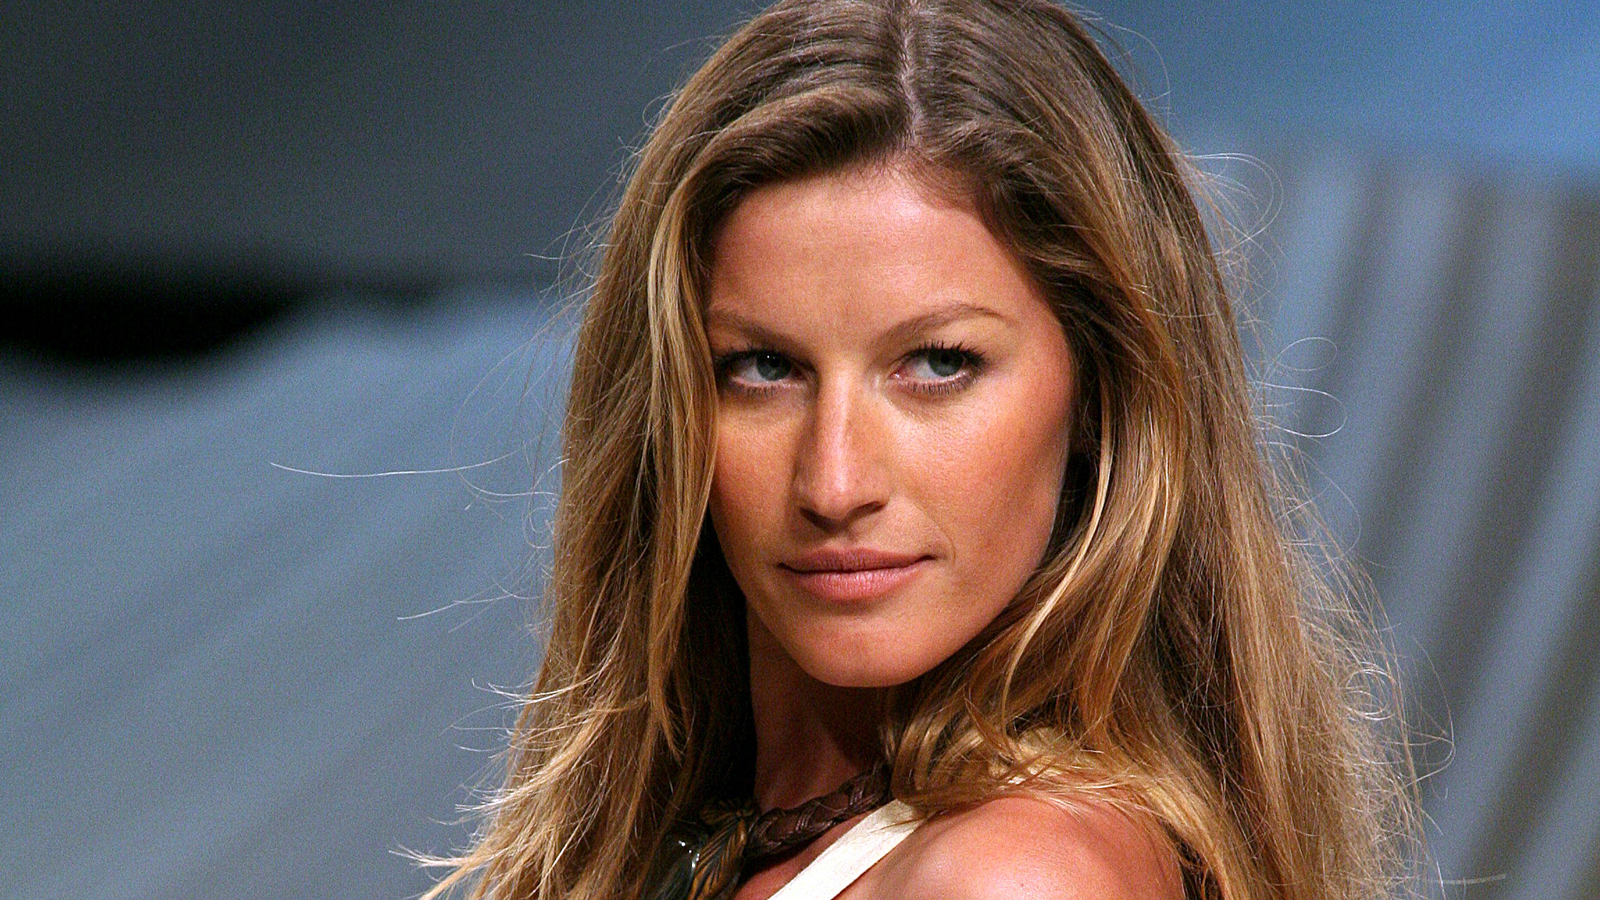 3 insights from gisele bundchen that can help you live your best life ladders